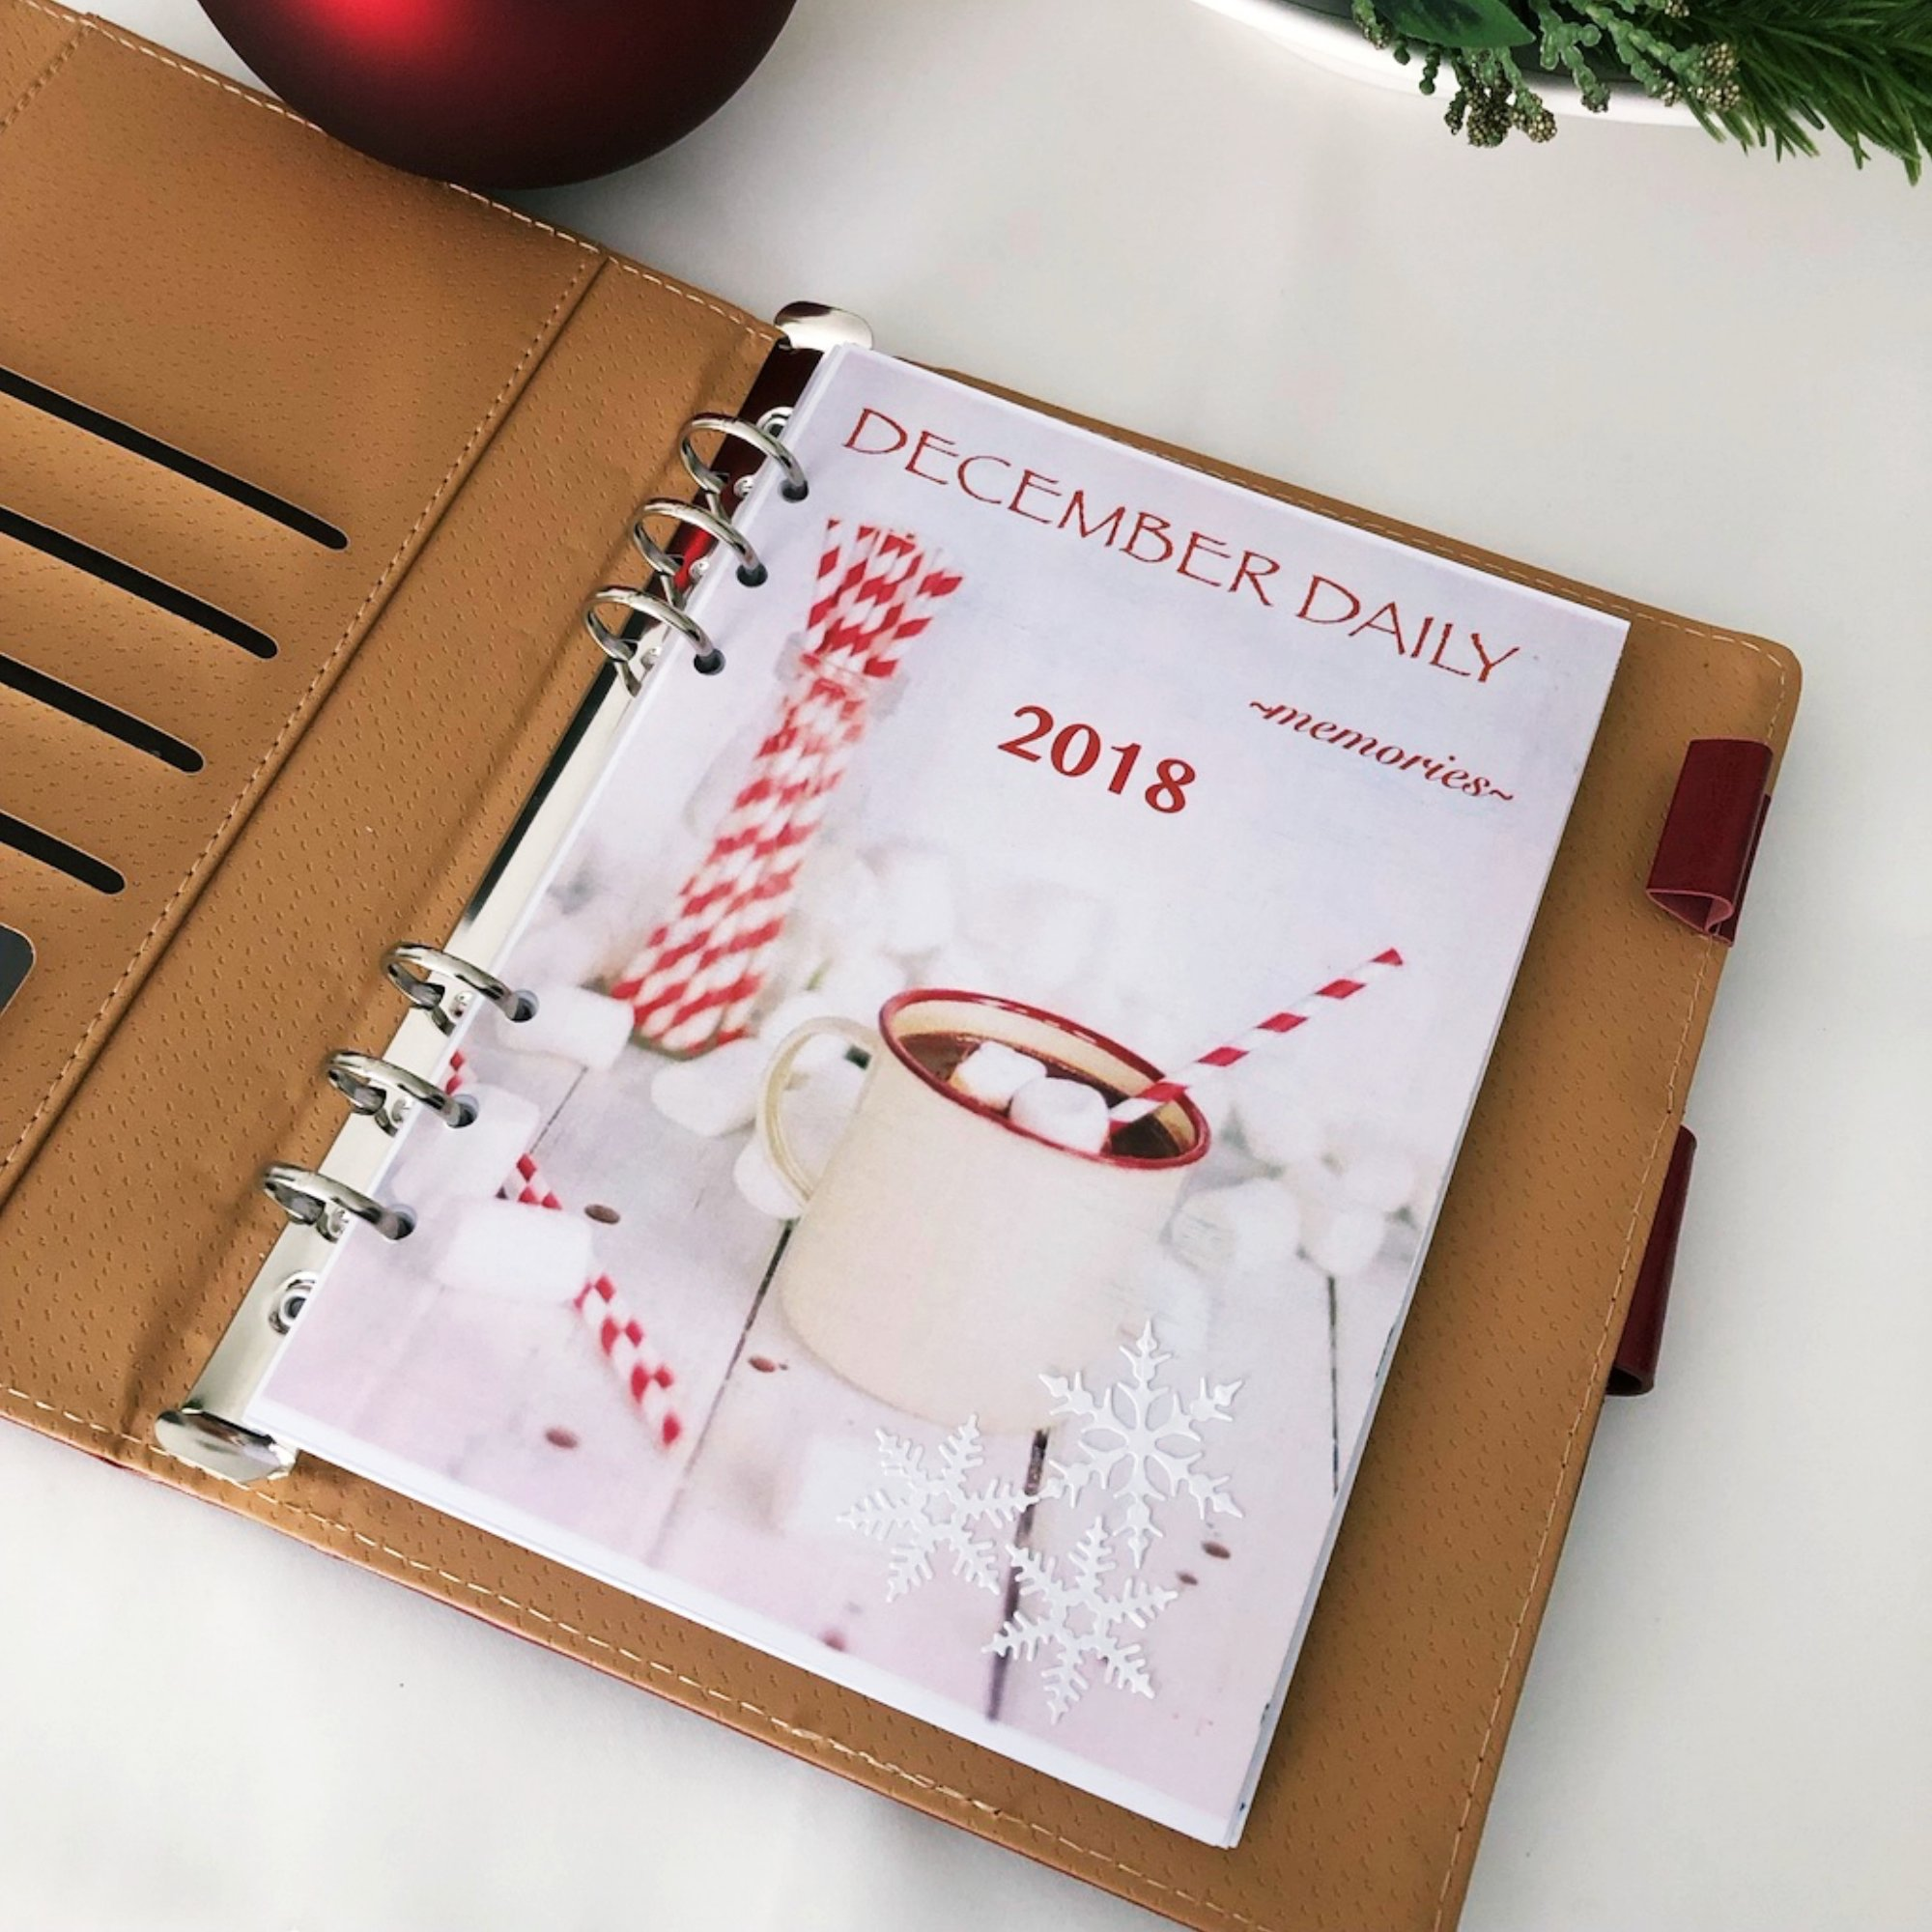 Creative journaling - December daily memories - Cover page - itstartswithacoffee.com #creativejournaling #journaling #December #2018 #2018December #coverpage